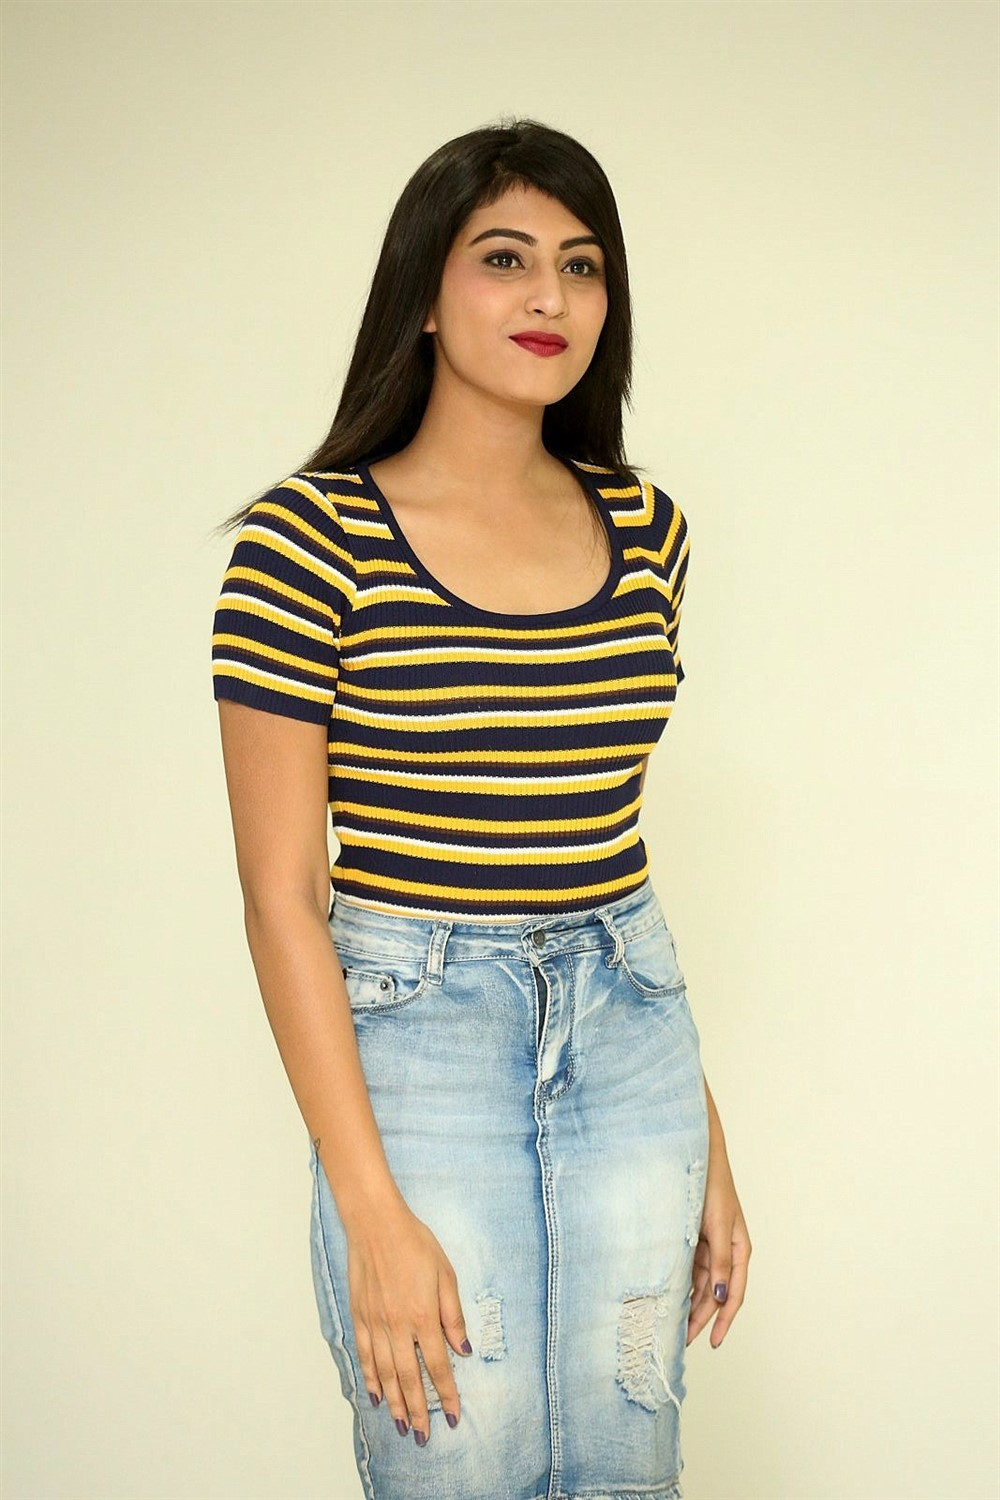 Degree College Actress Divya Rao Photos